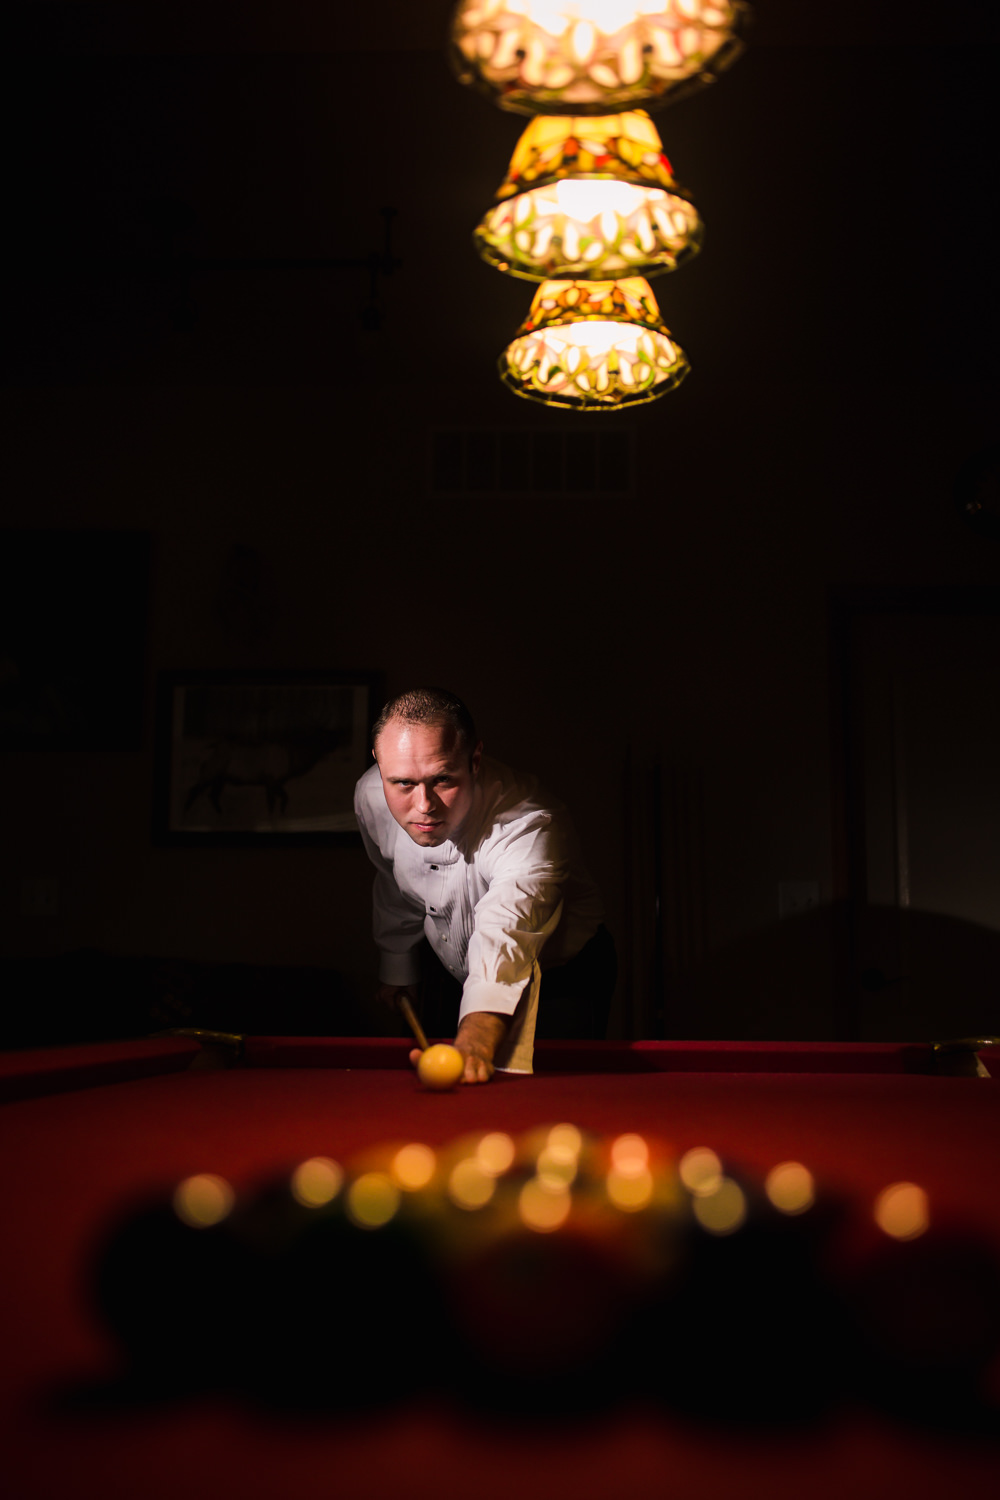 Groom_playing_pool